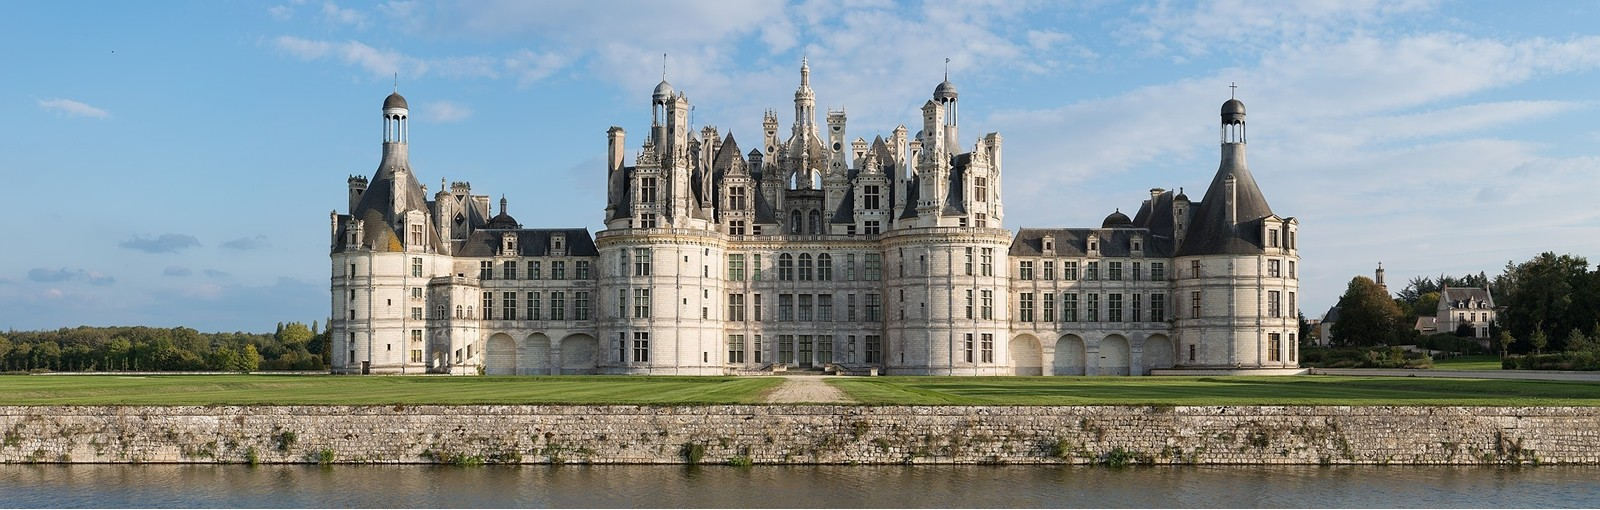 Tours Normandy - Castles of the Loire valley - Multi-regional - Multiday tours from Paris